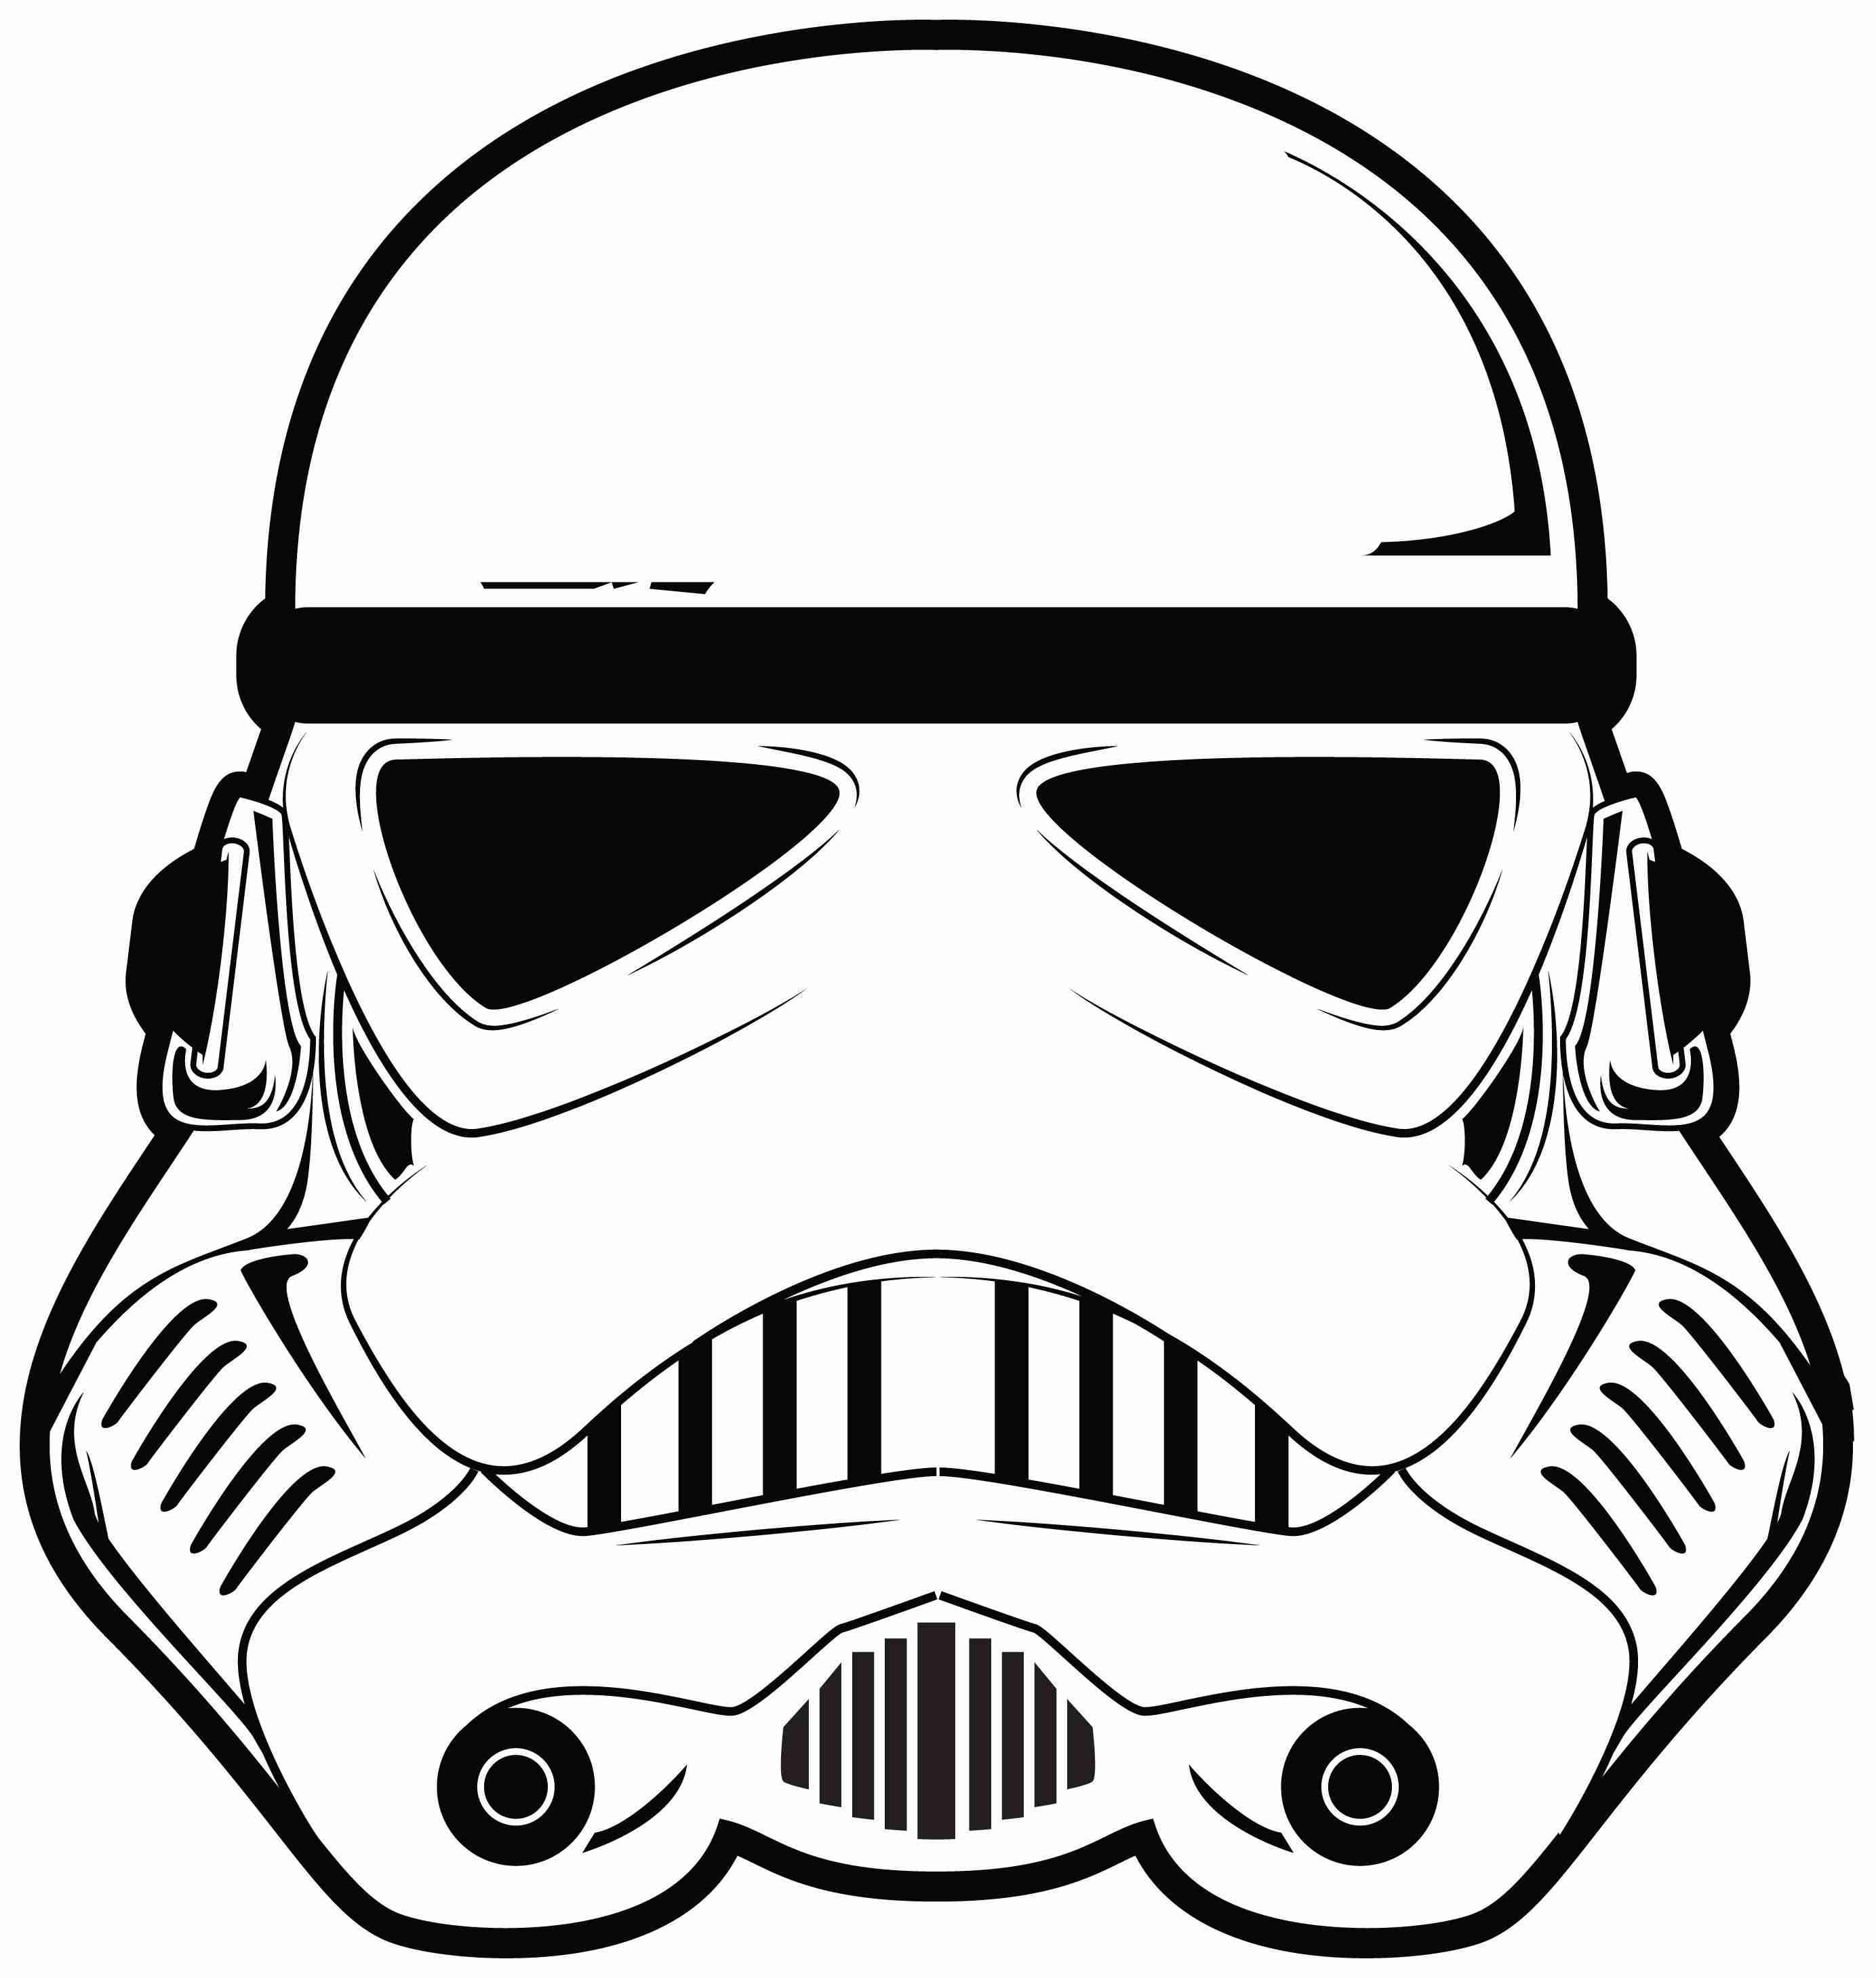 drawings of star wars characters how to draw a tie fighter easy step by step star wars of characters drawings wars star